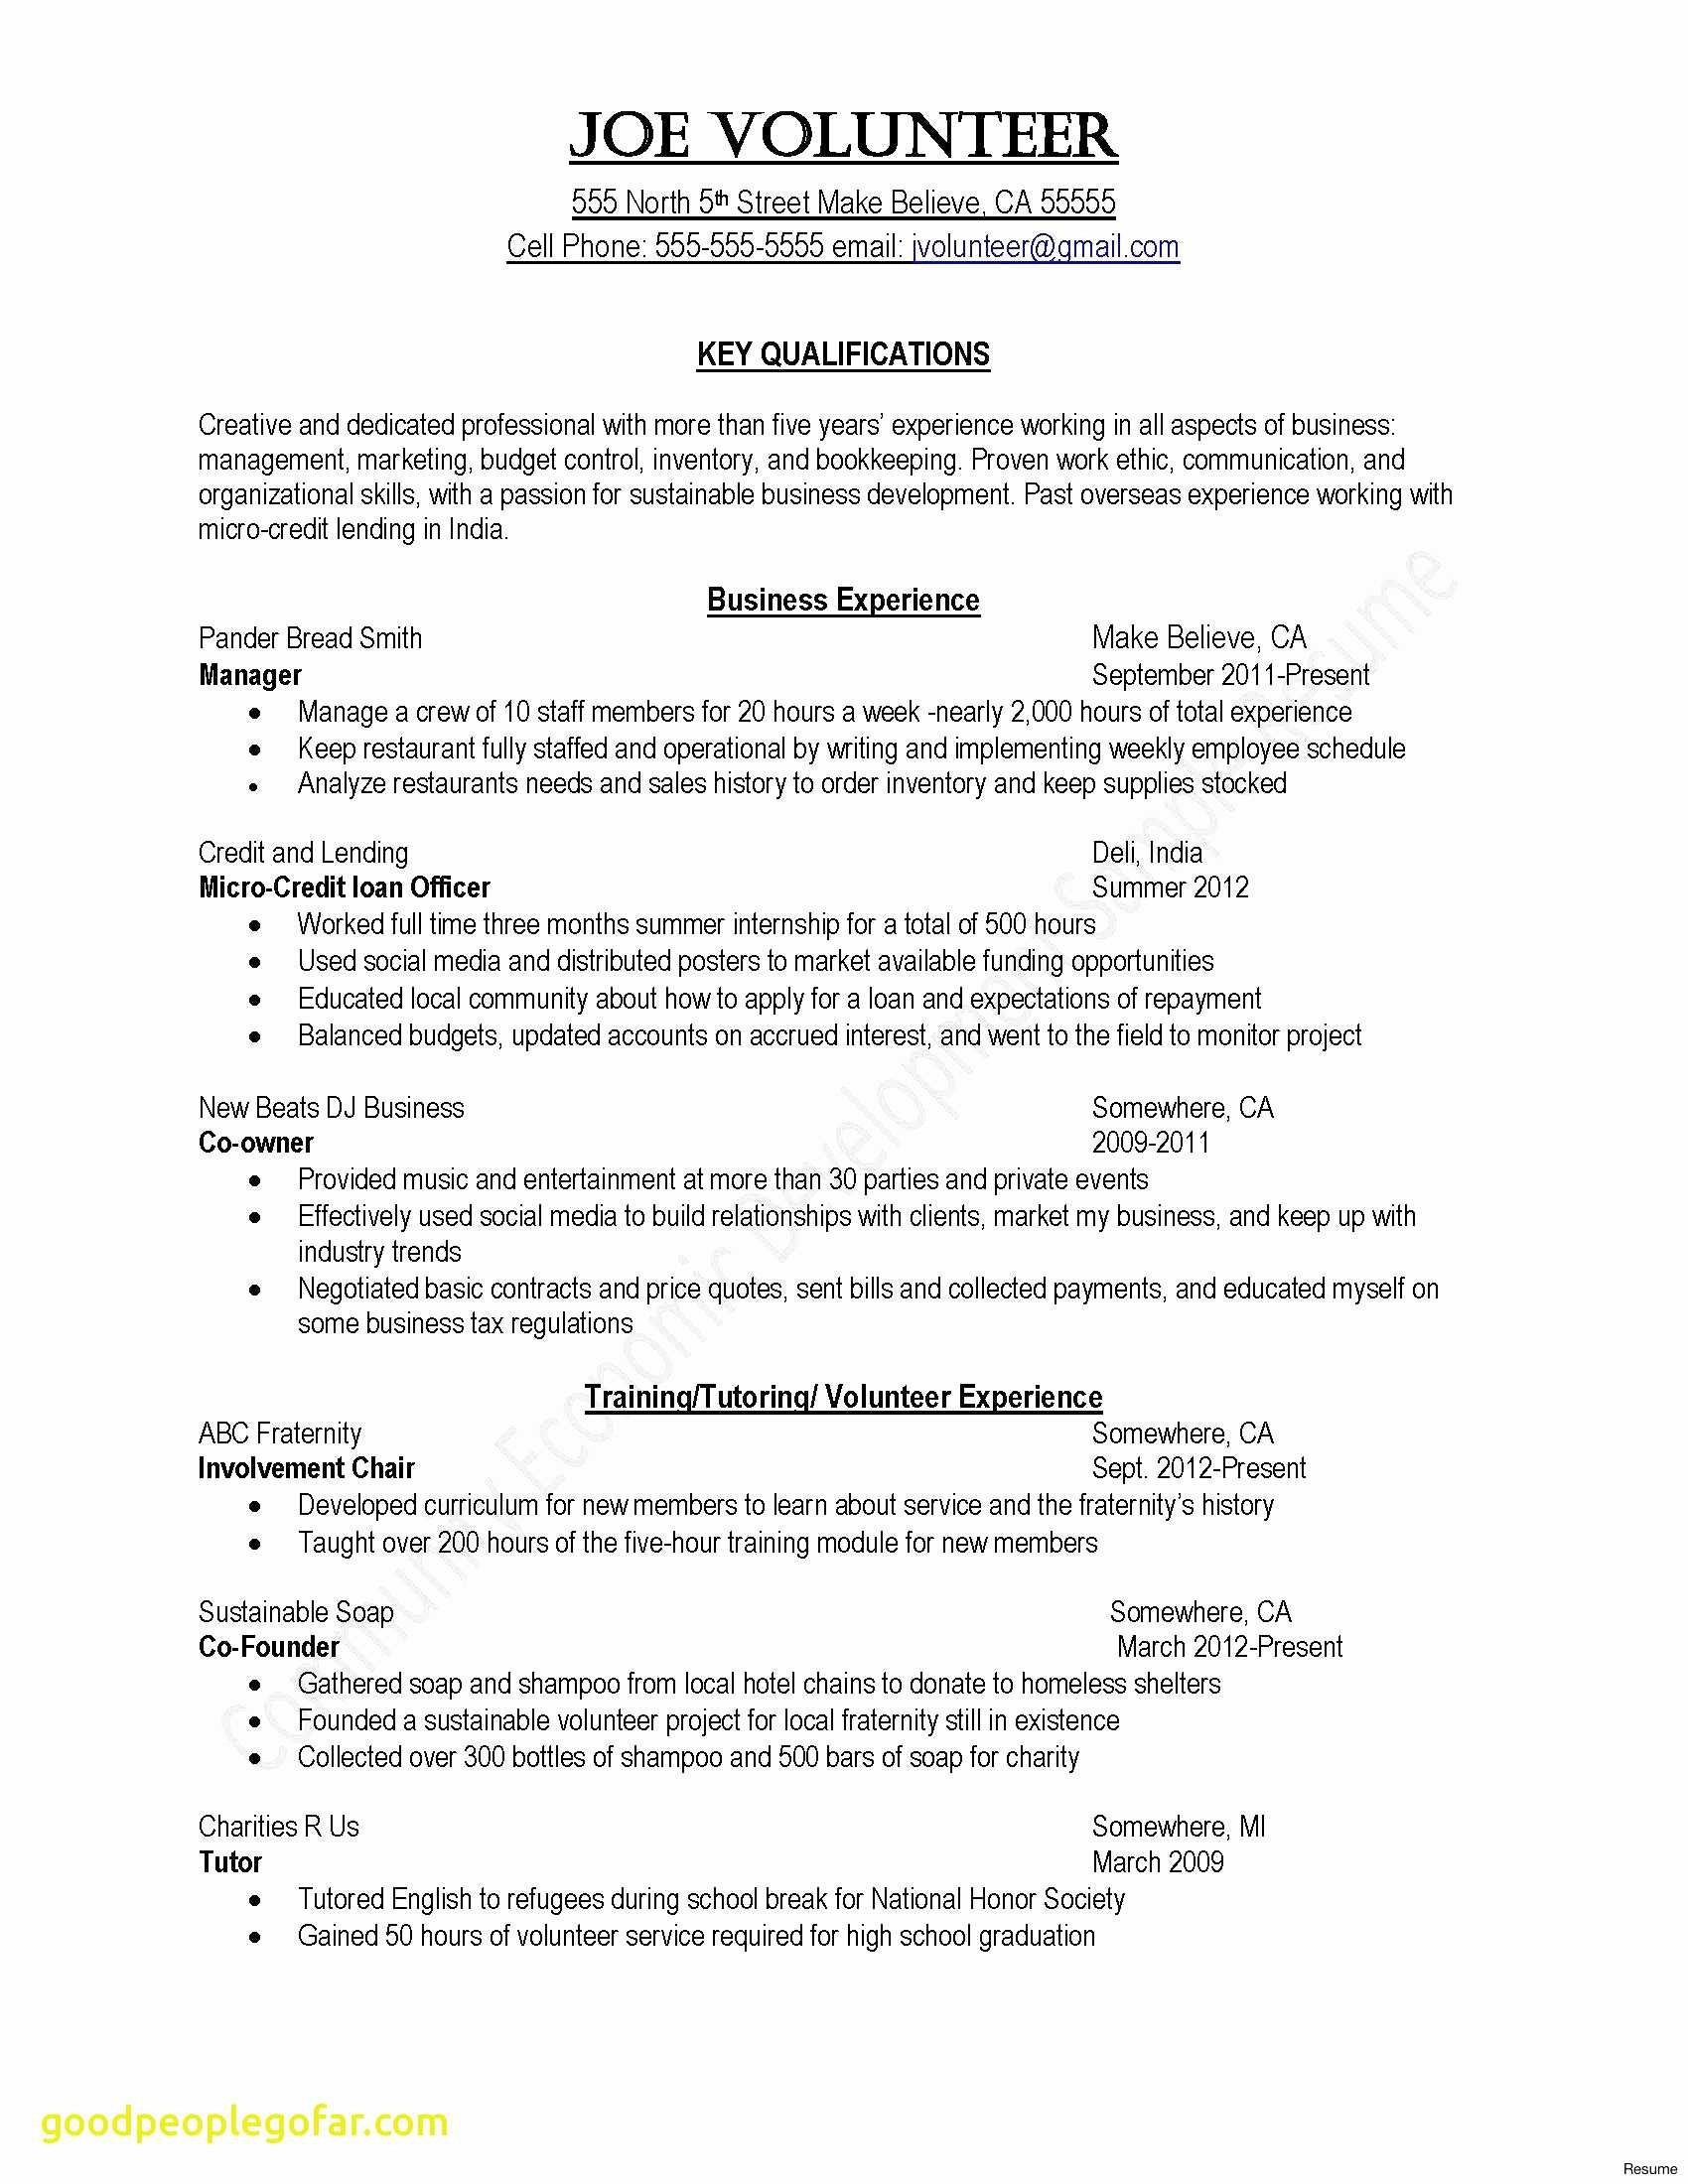 Need Help with Resume - Letter Introduction Template Collection